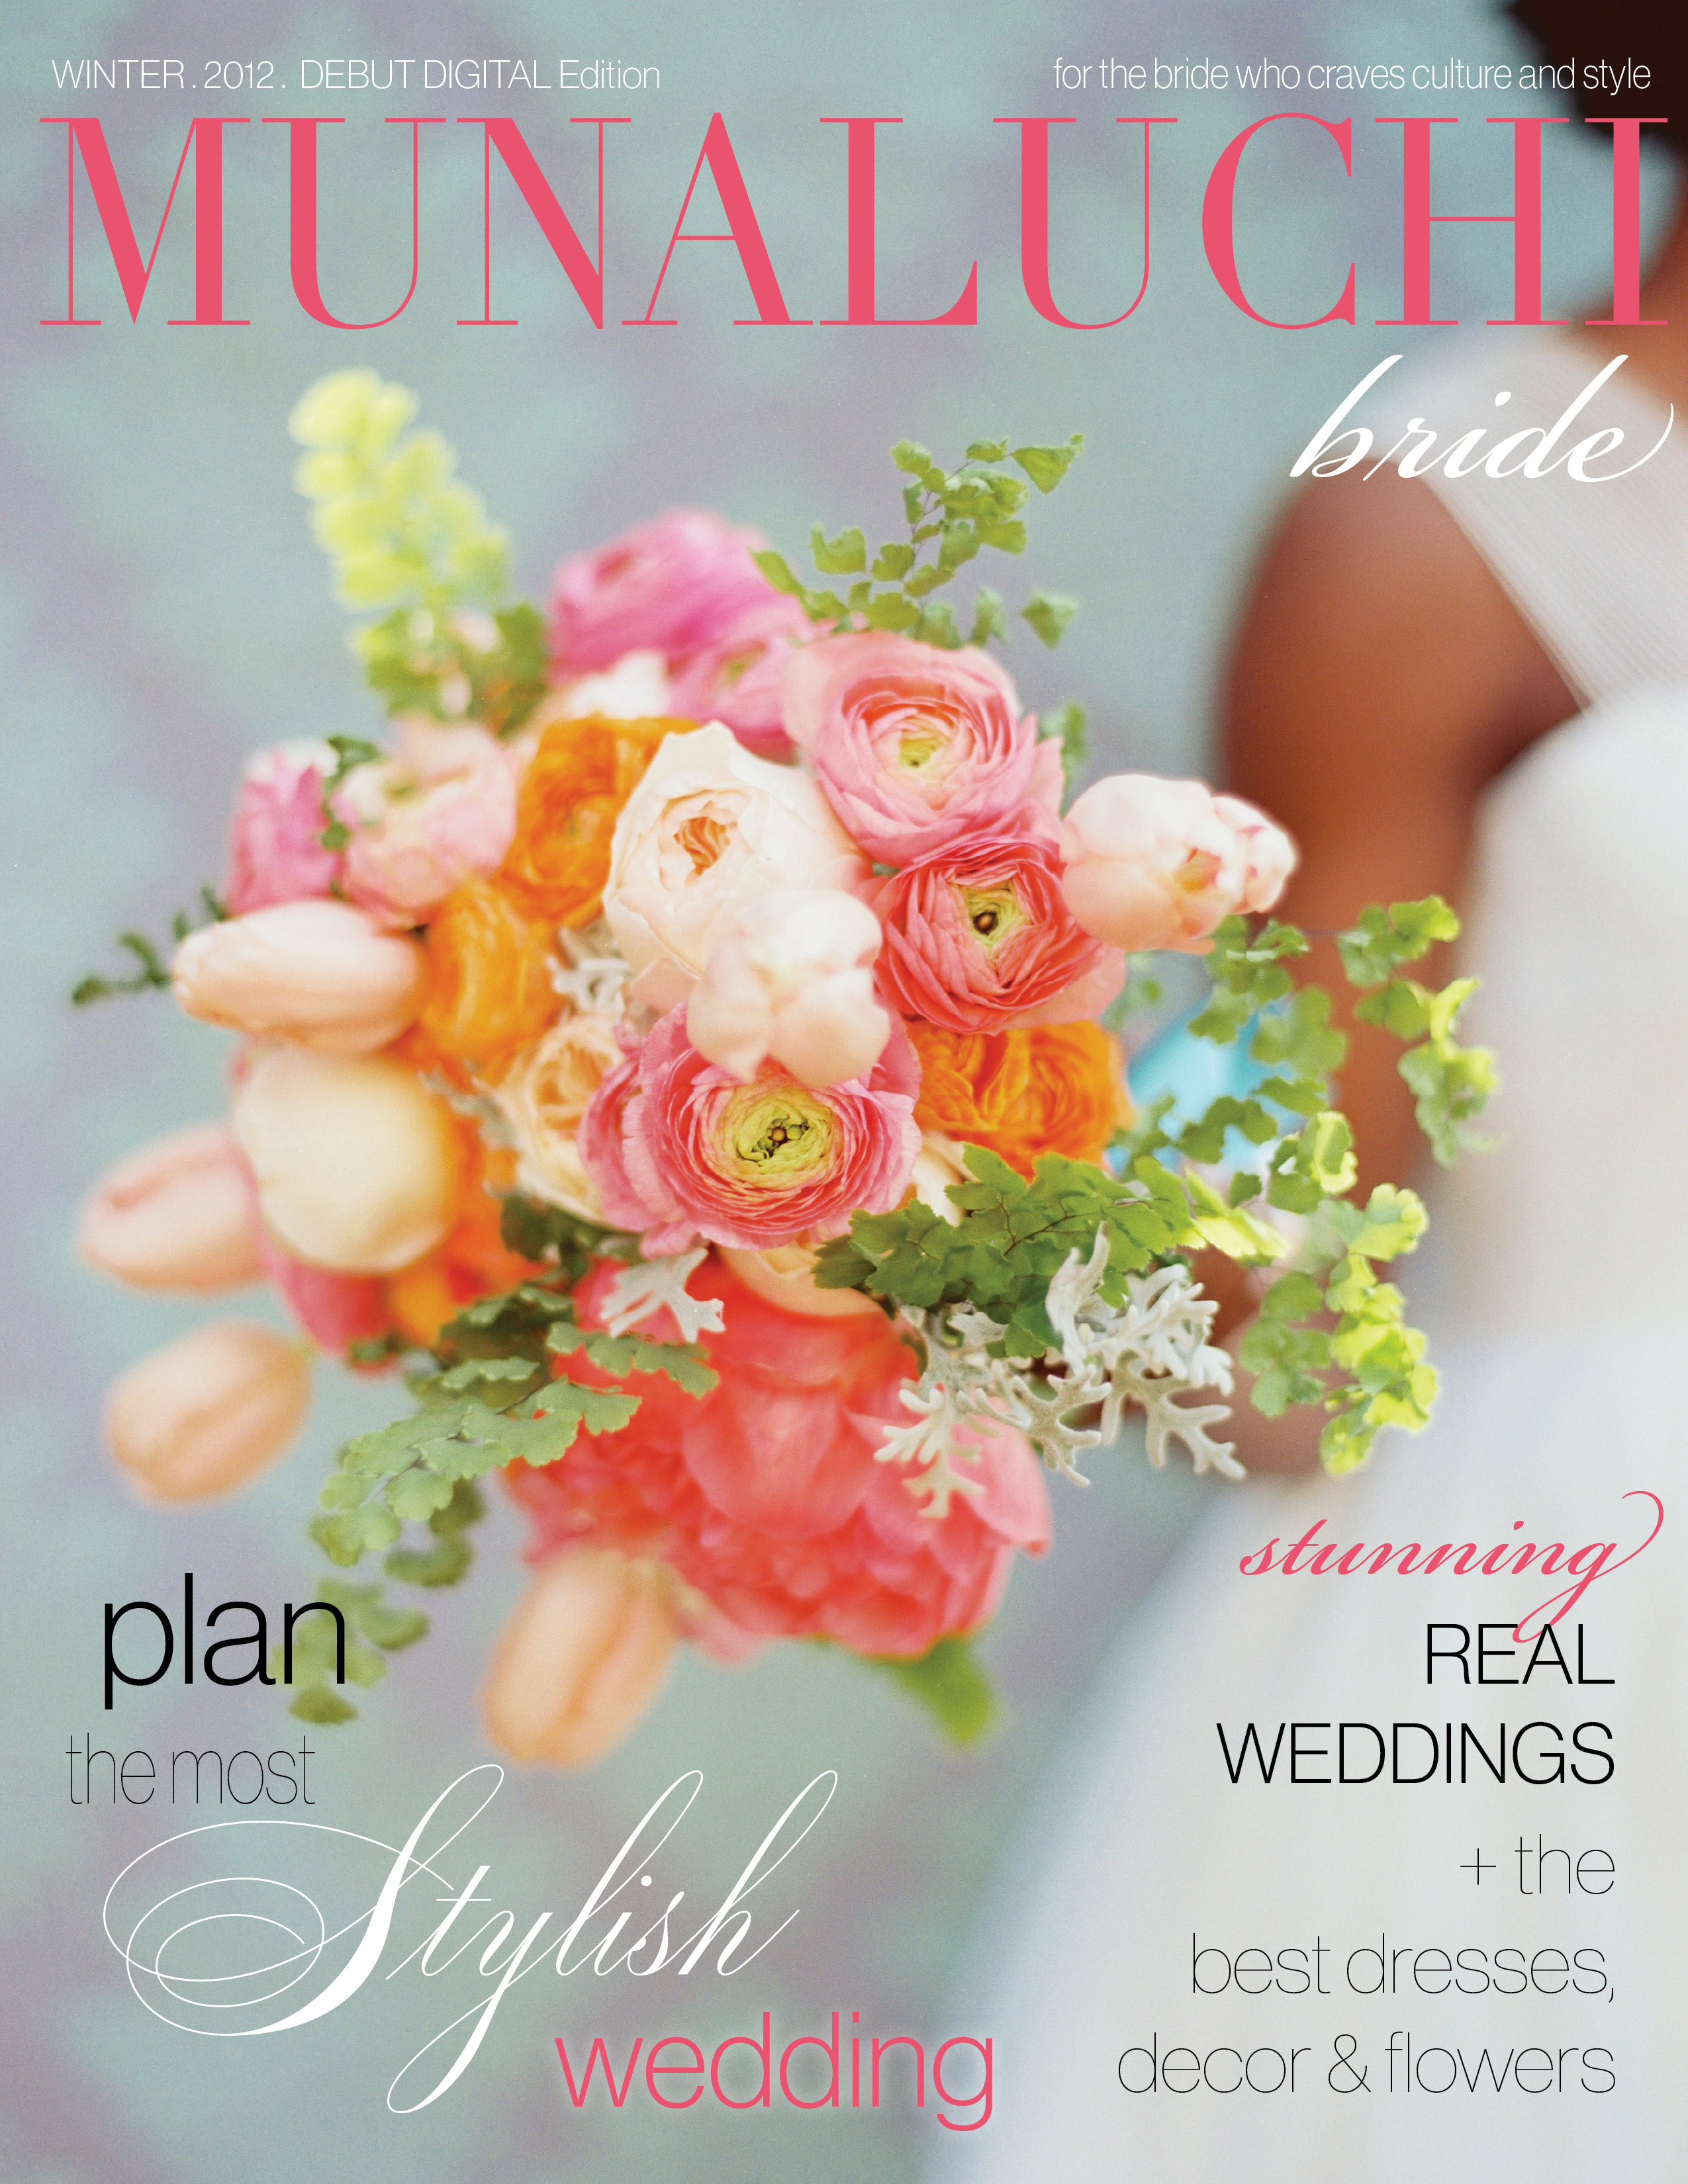 Dallas Wedding Planner, Dallas Event Planner, Dallas Party Planner, Munaluchi Bridal, Munaluchi Digital Magazine